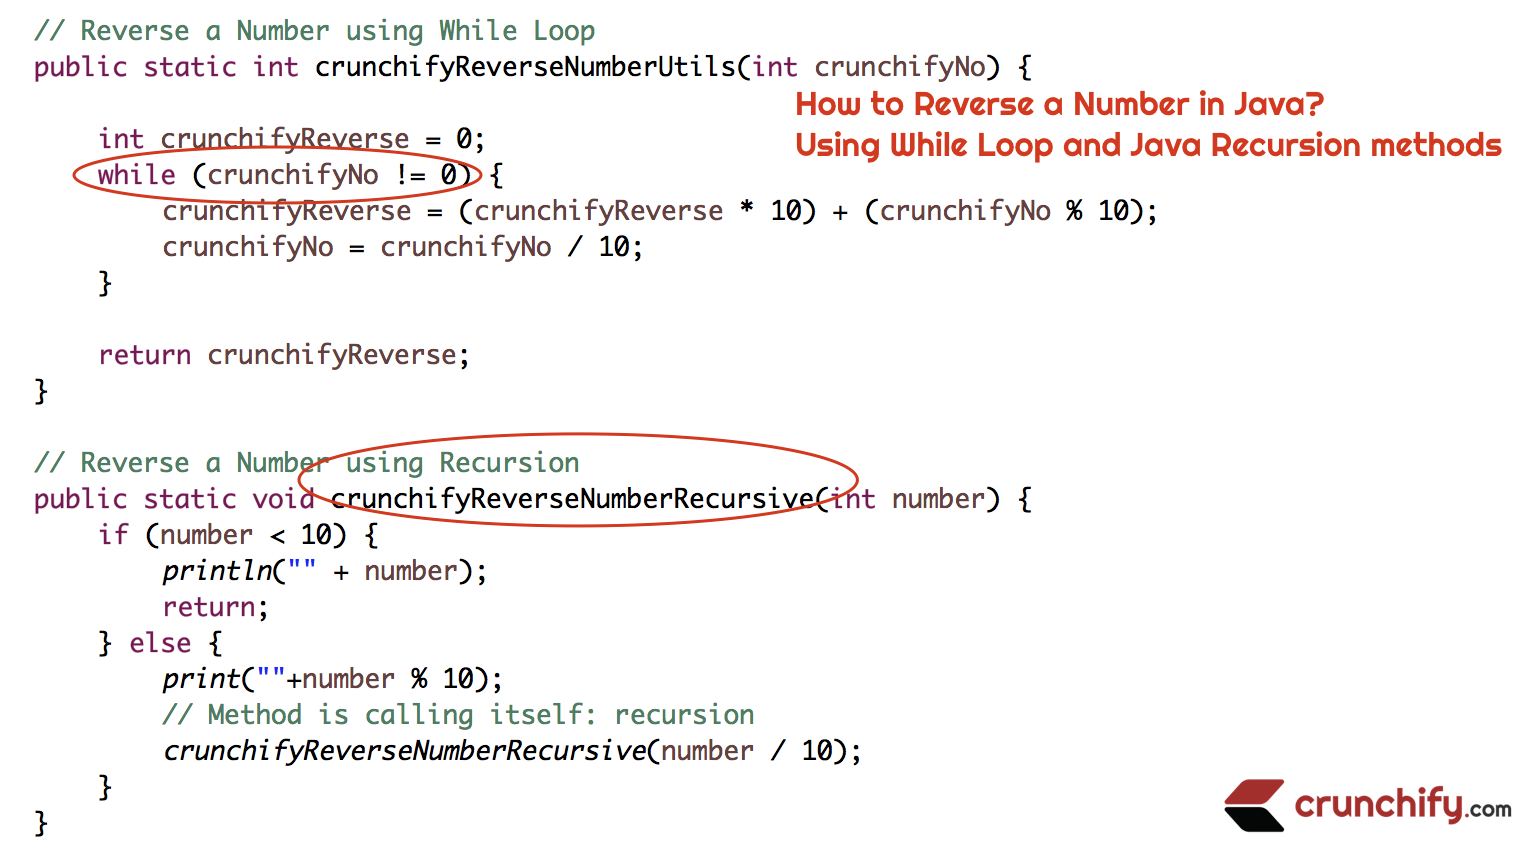 How to Reverse a Number in Java?